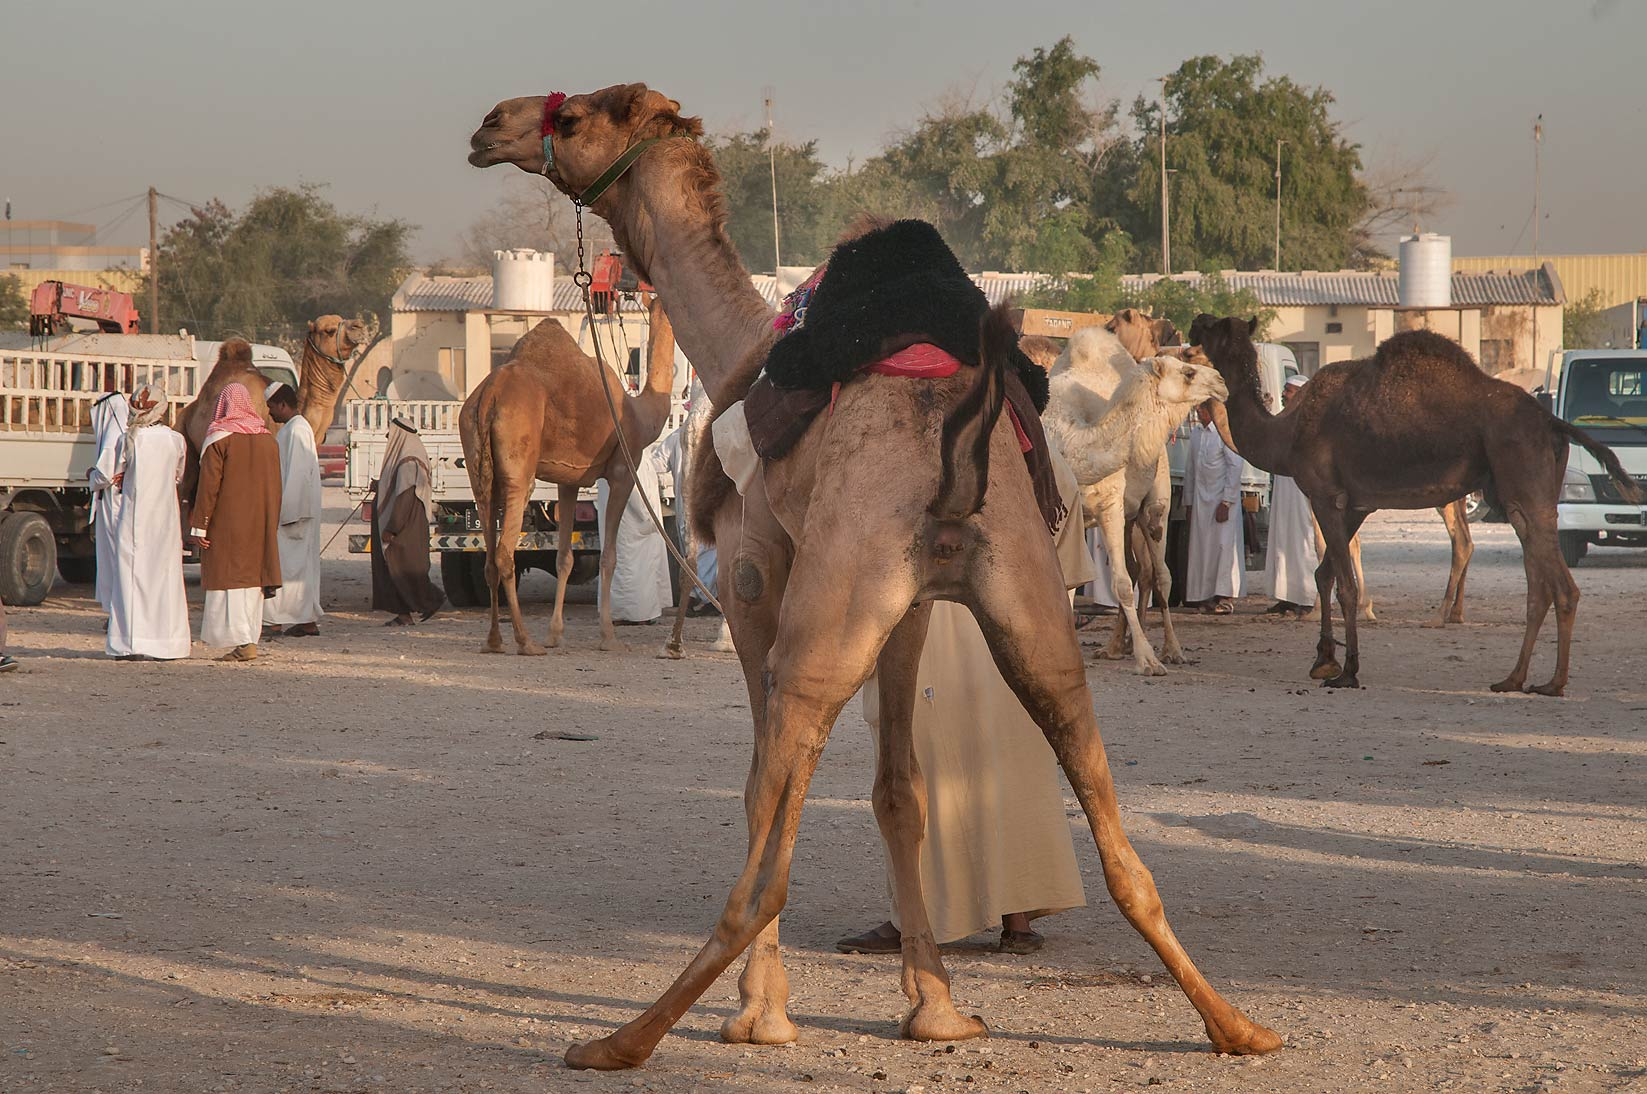 Camel in wide posture in Livestock Market, Wholesale Markets area. Doha, Qatar